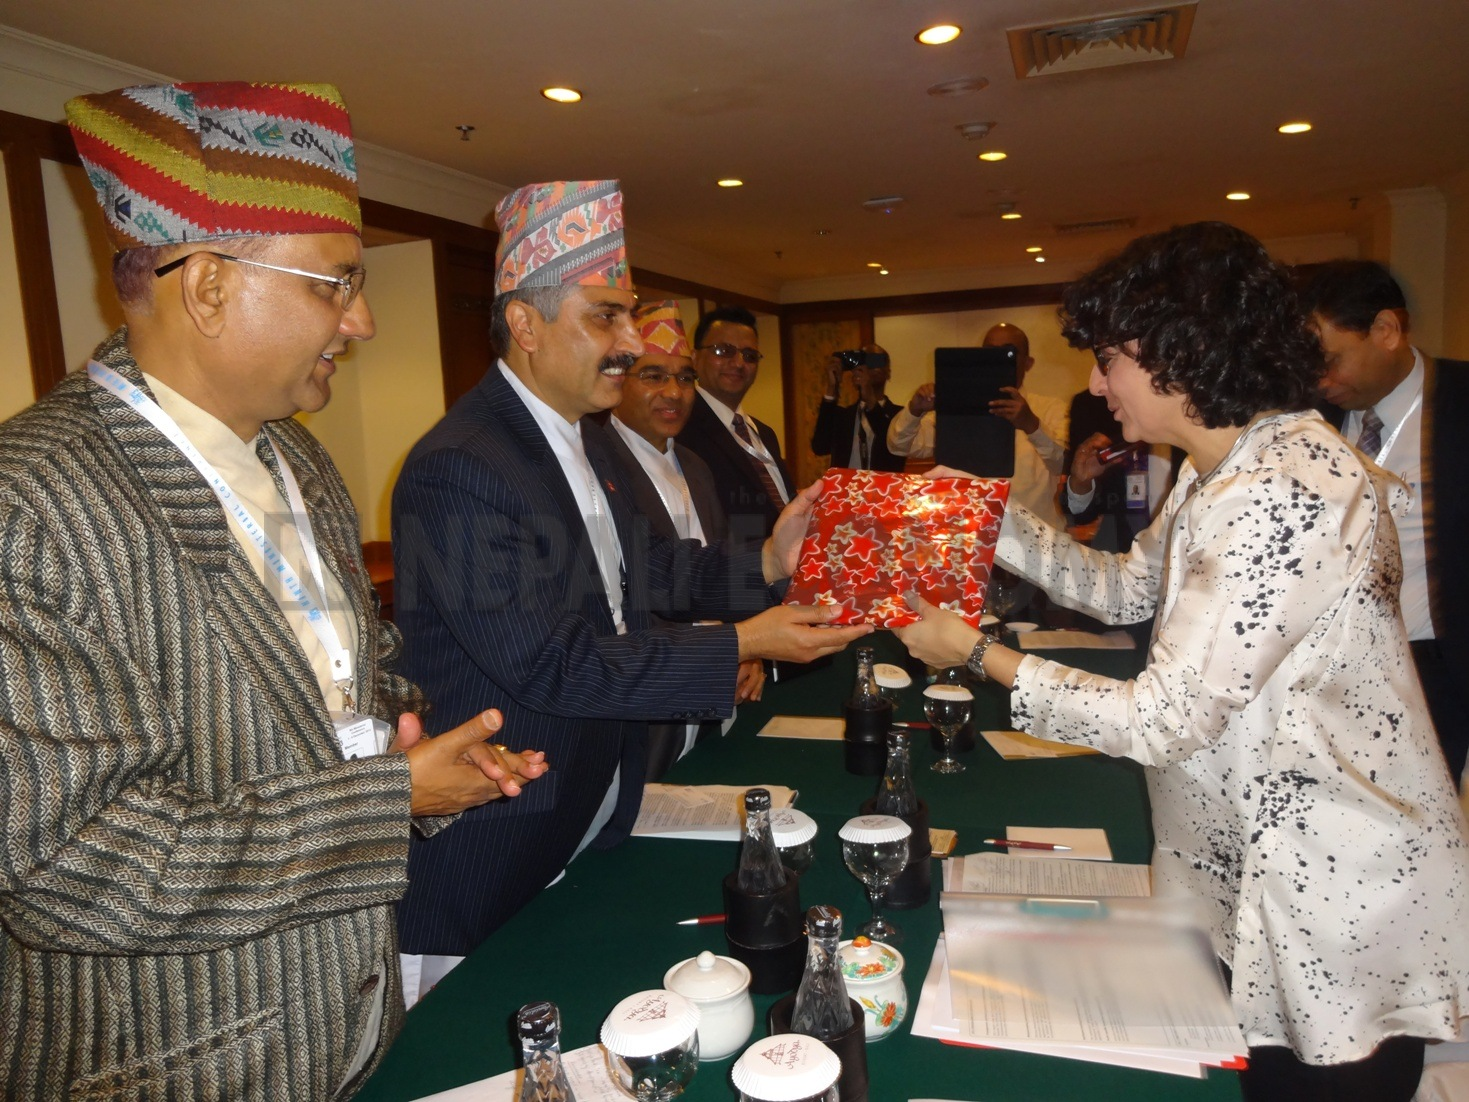 Koirala seeks ITC help to promote Nepal tea